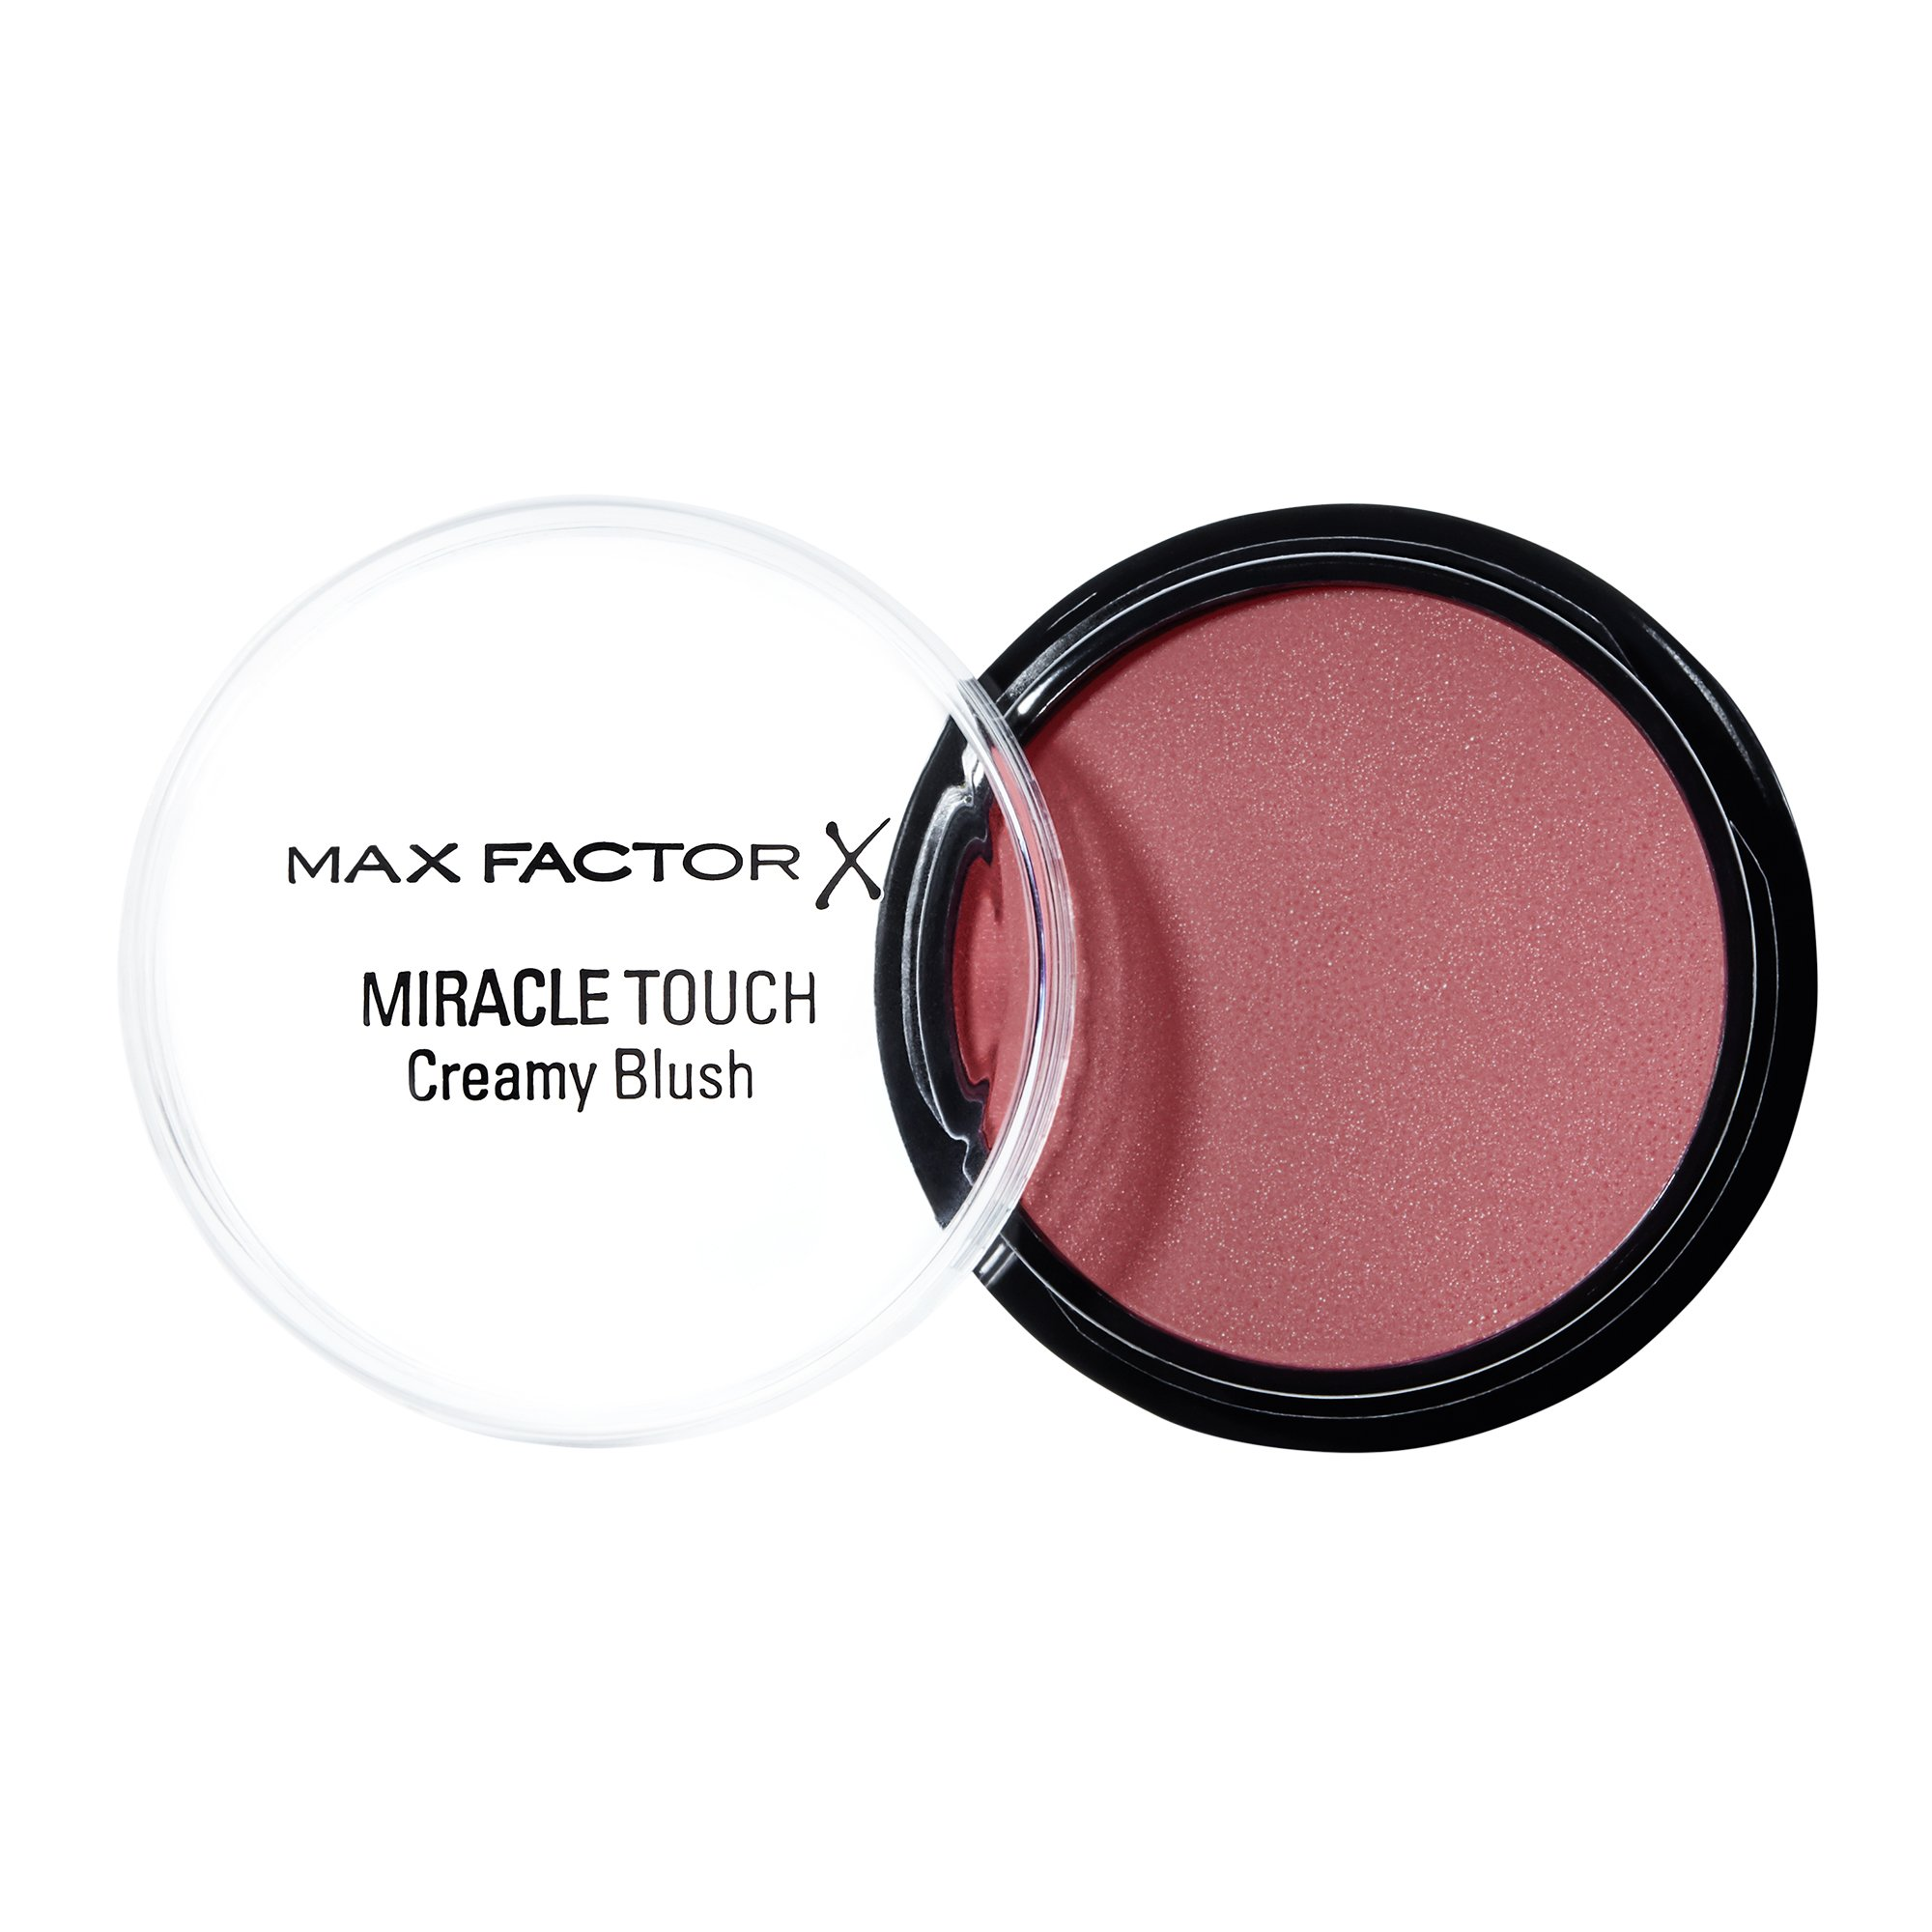 Max Factor Miracle Touch Creamy Blush for Women, 09 Soft Murano, 0.40 Ounce